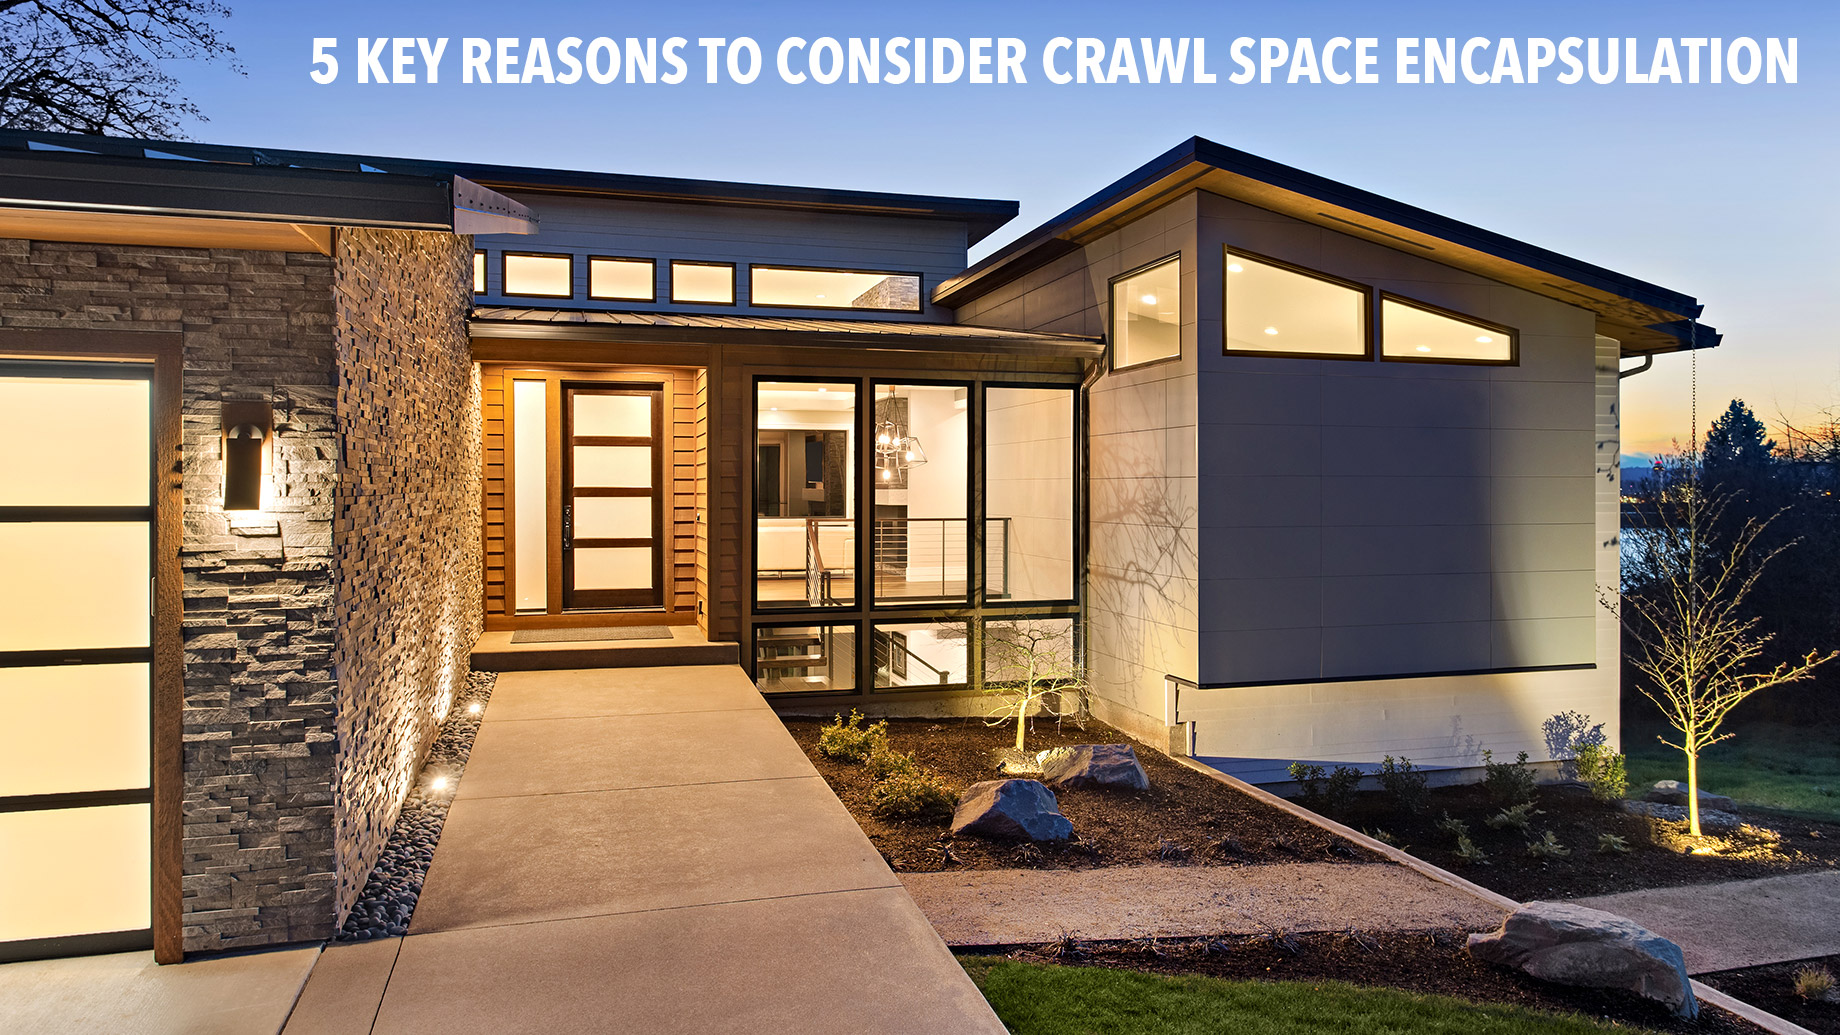 5 Key Reasons to Consider Crawl Space Encapsulation